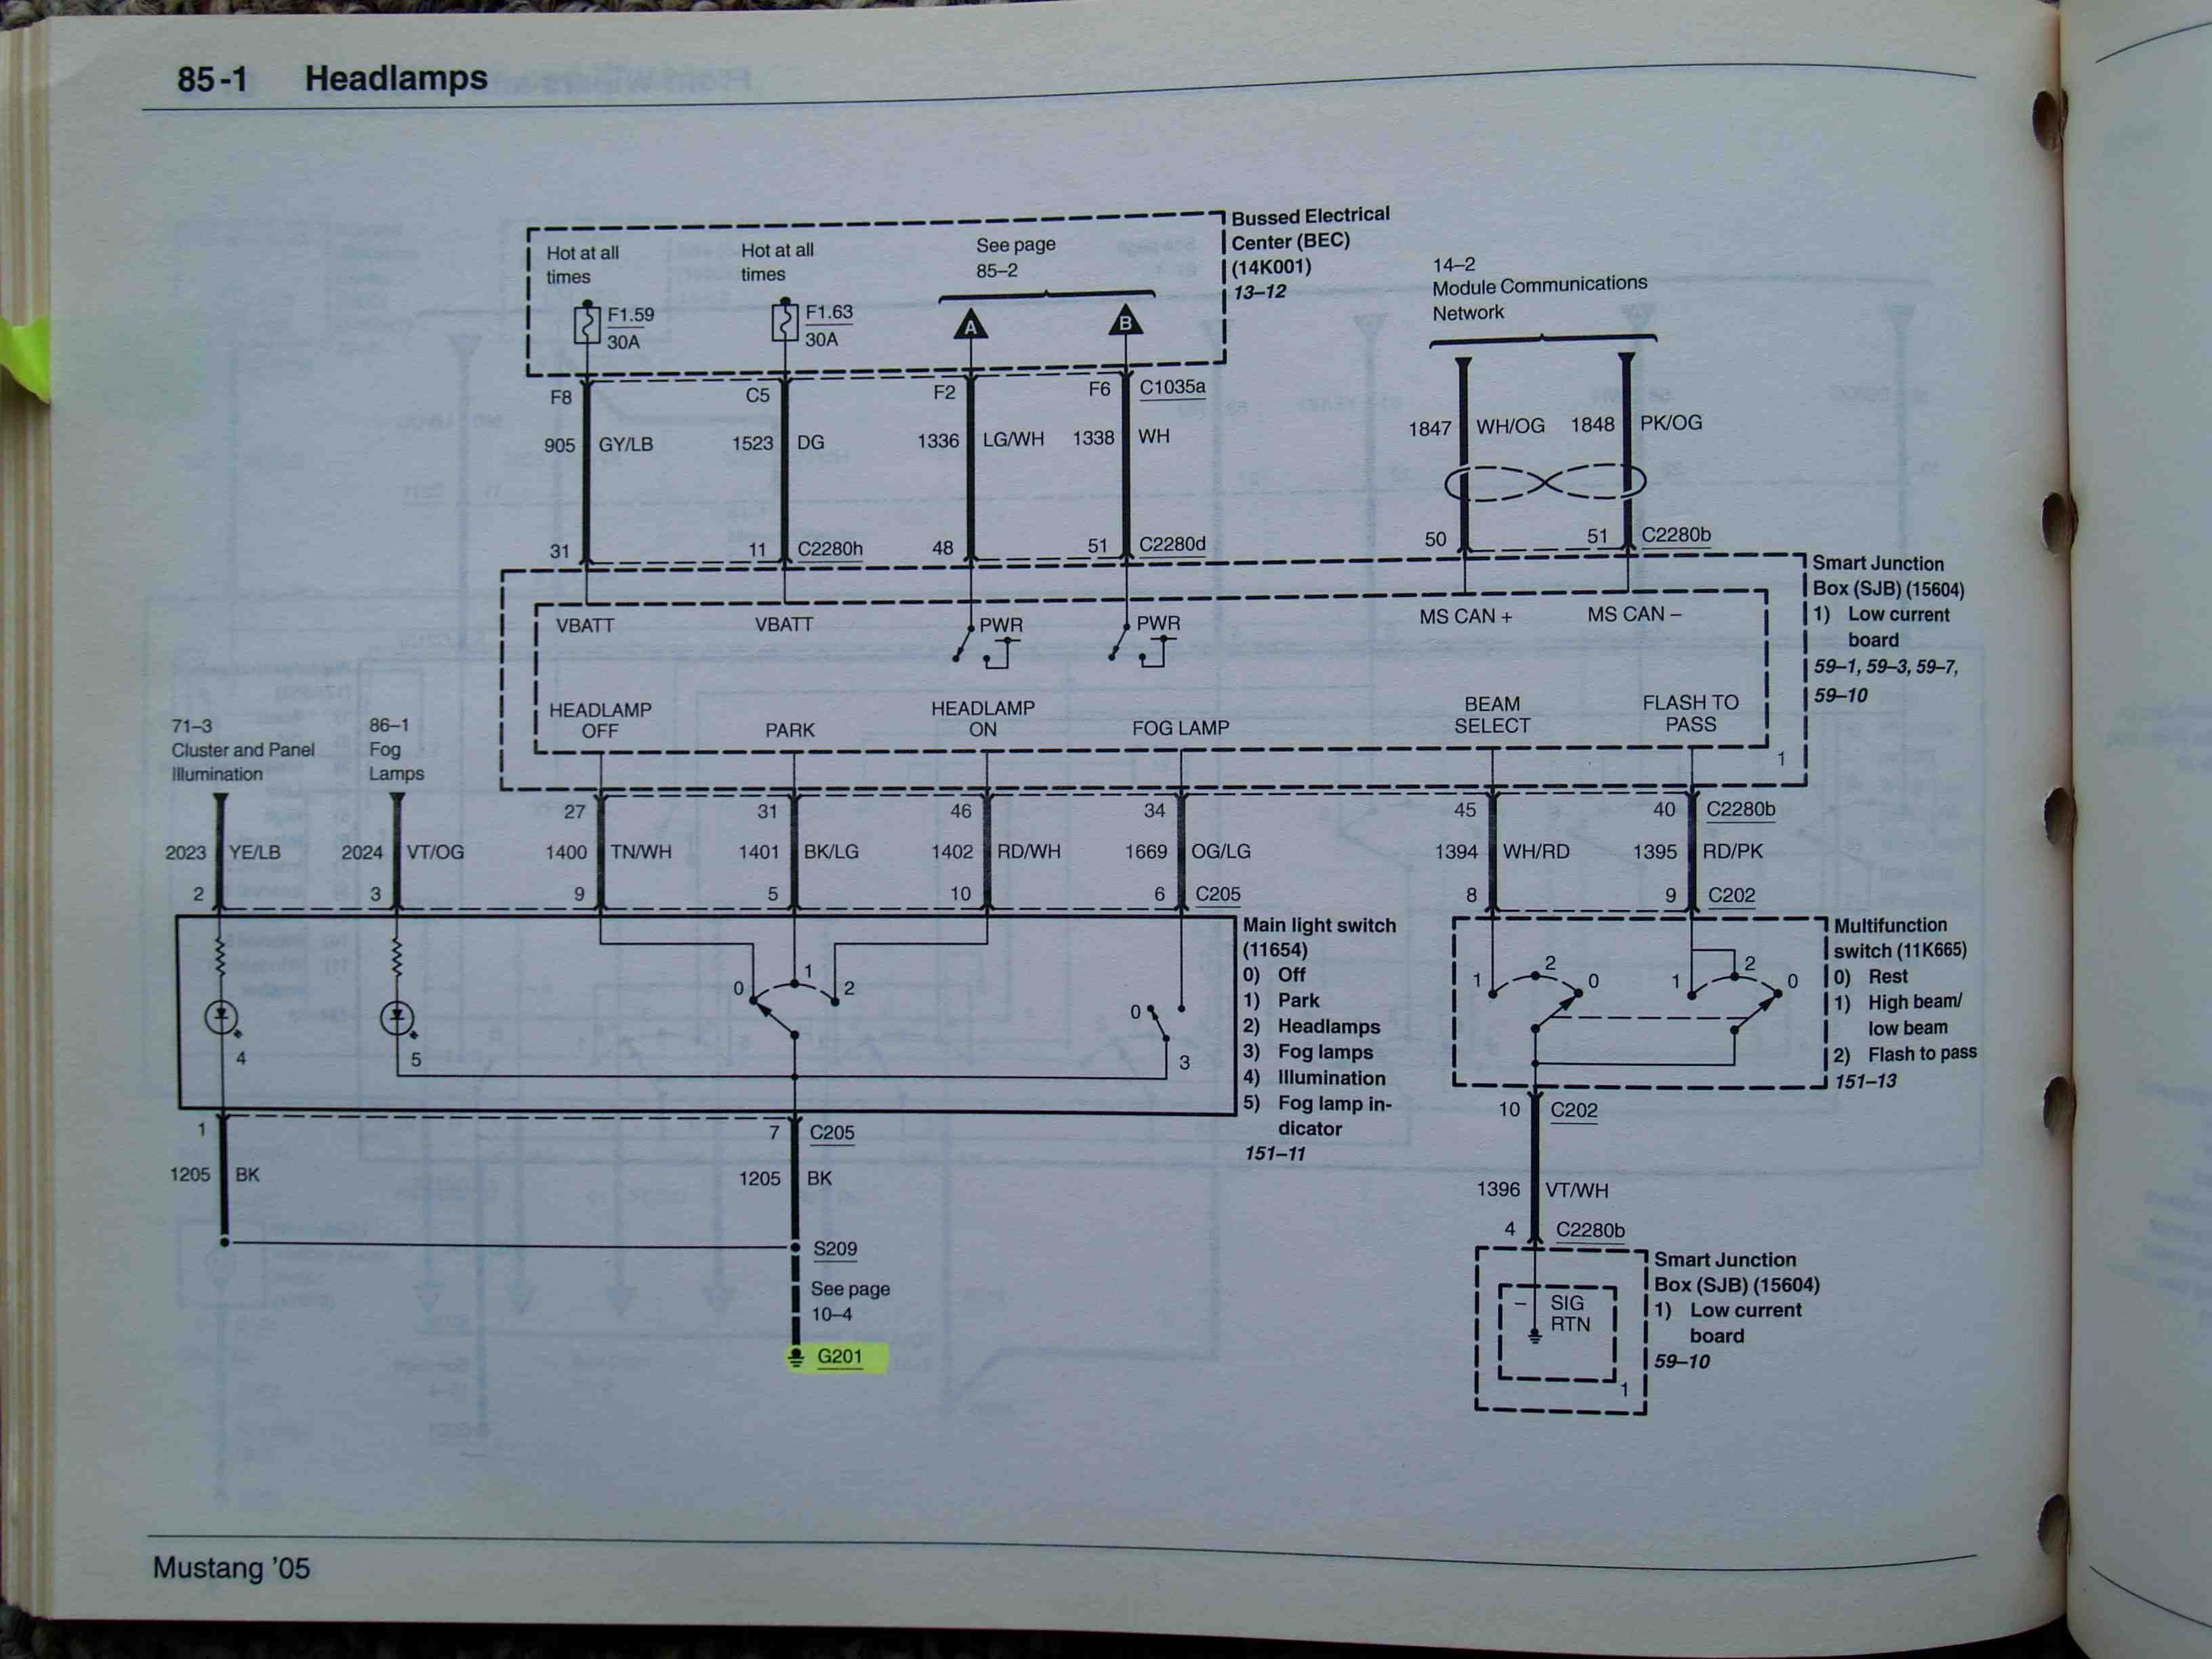 wiring diagram 2006 ford mustang the wiring diagram 2008 gt headlight wiring diagram ford mustang forum wiring diagram